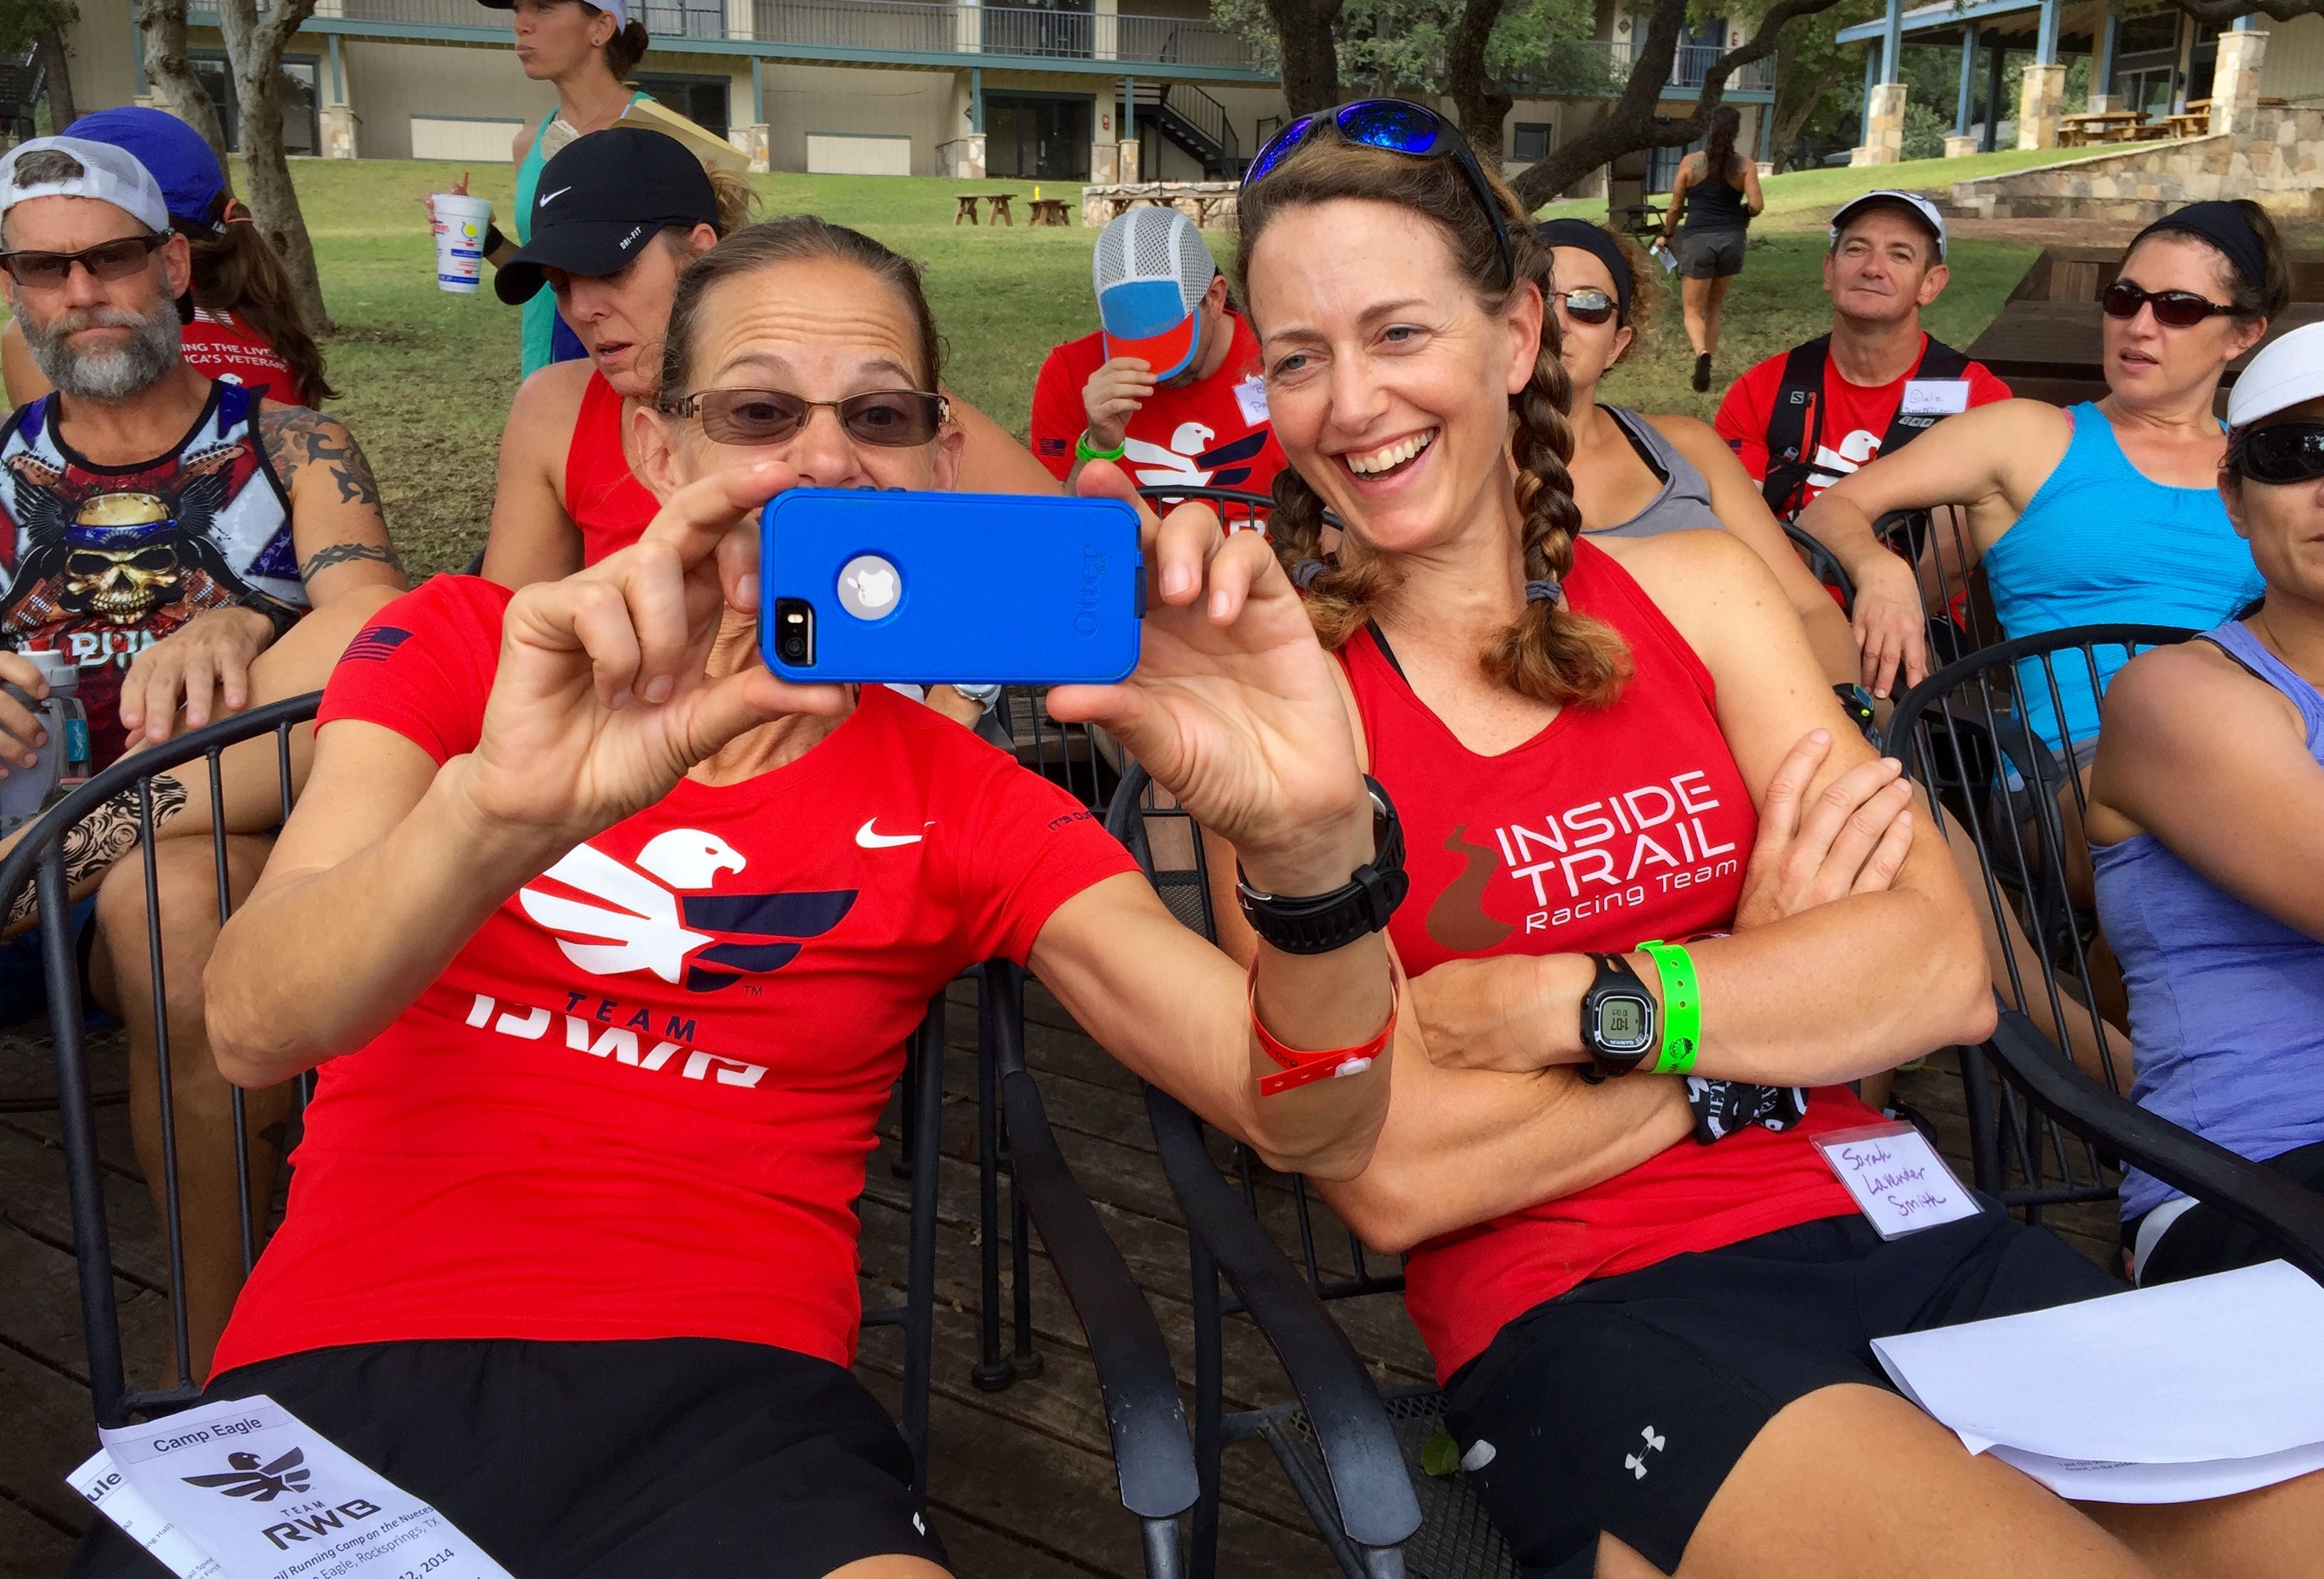 Me with Meghan Arboghast--one of my all-time favorite female ultrarunners, a top competitor at age 54--goofing off and taking a selfie.